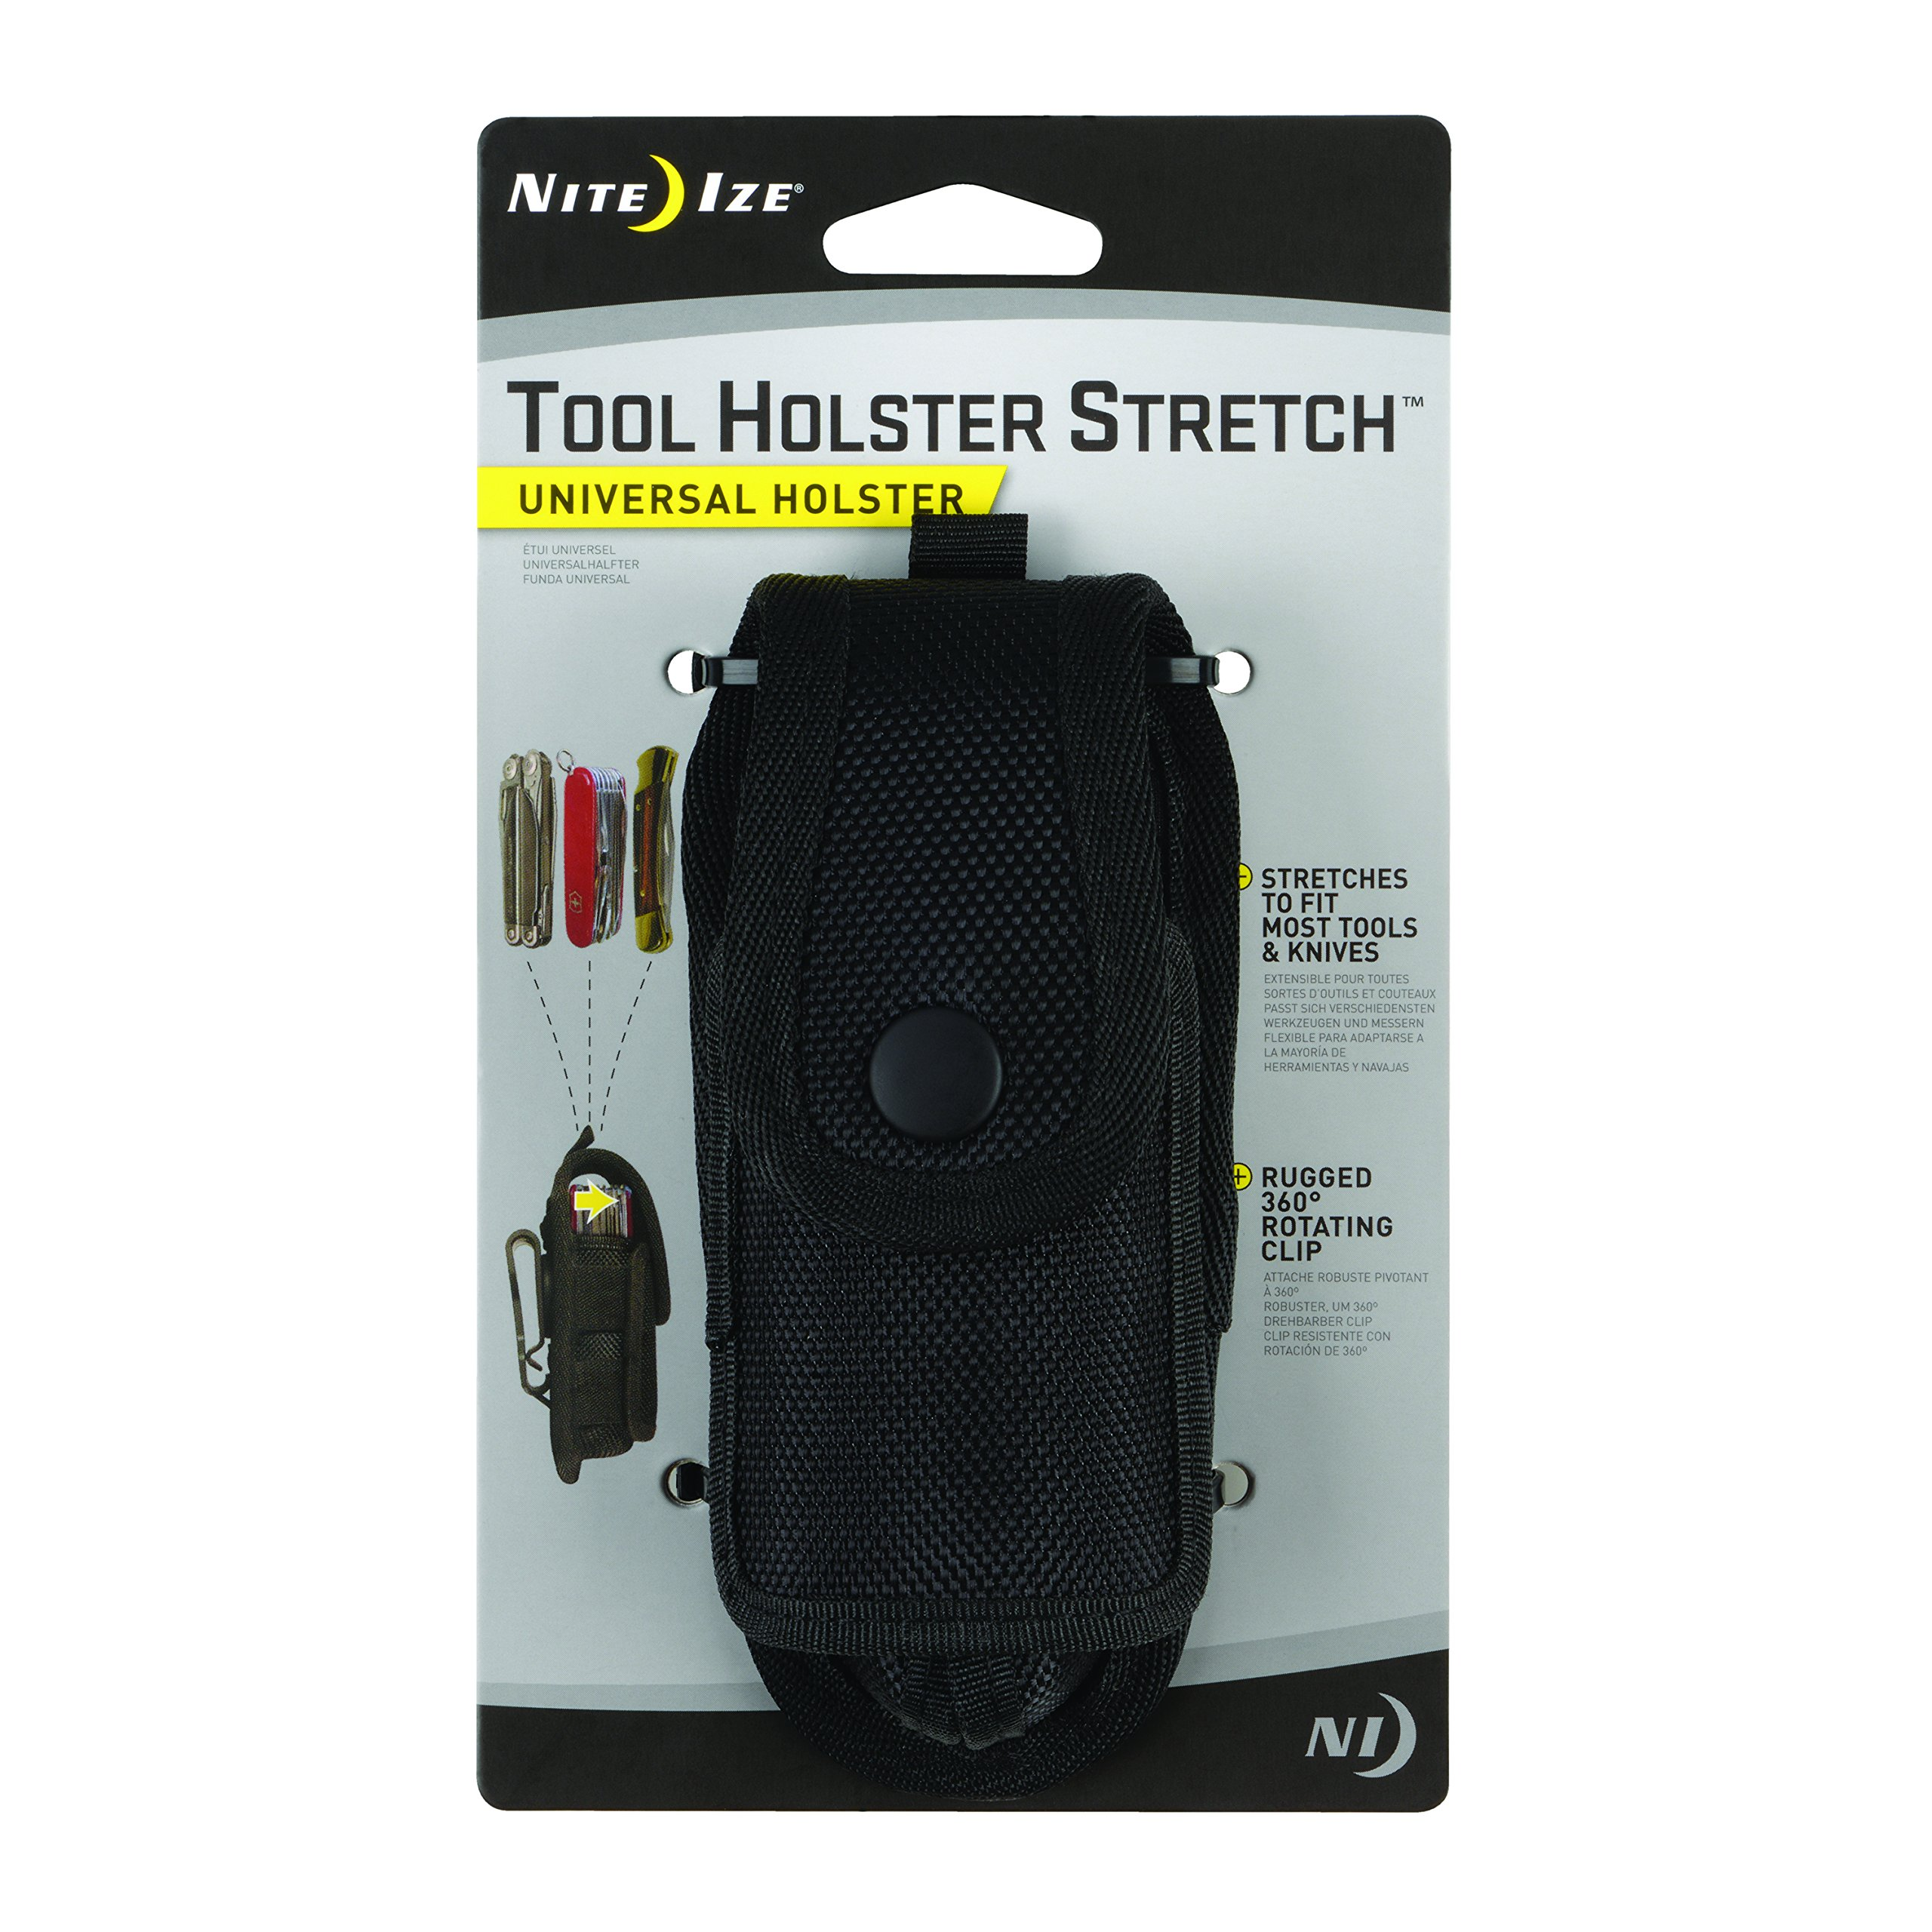 Nite Ize Tool Holster Stretch, Universal Multi Tool Holder With Elastic Side Panels + Rotating Belt Clip by Nite Ize